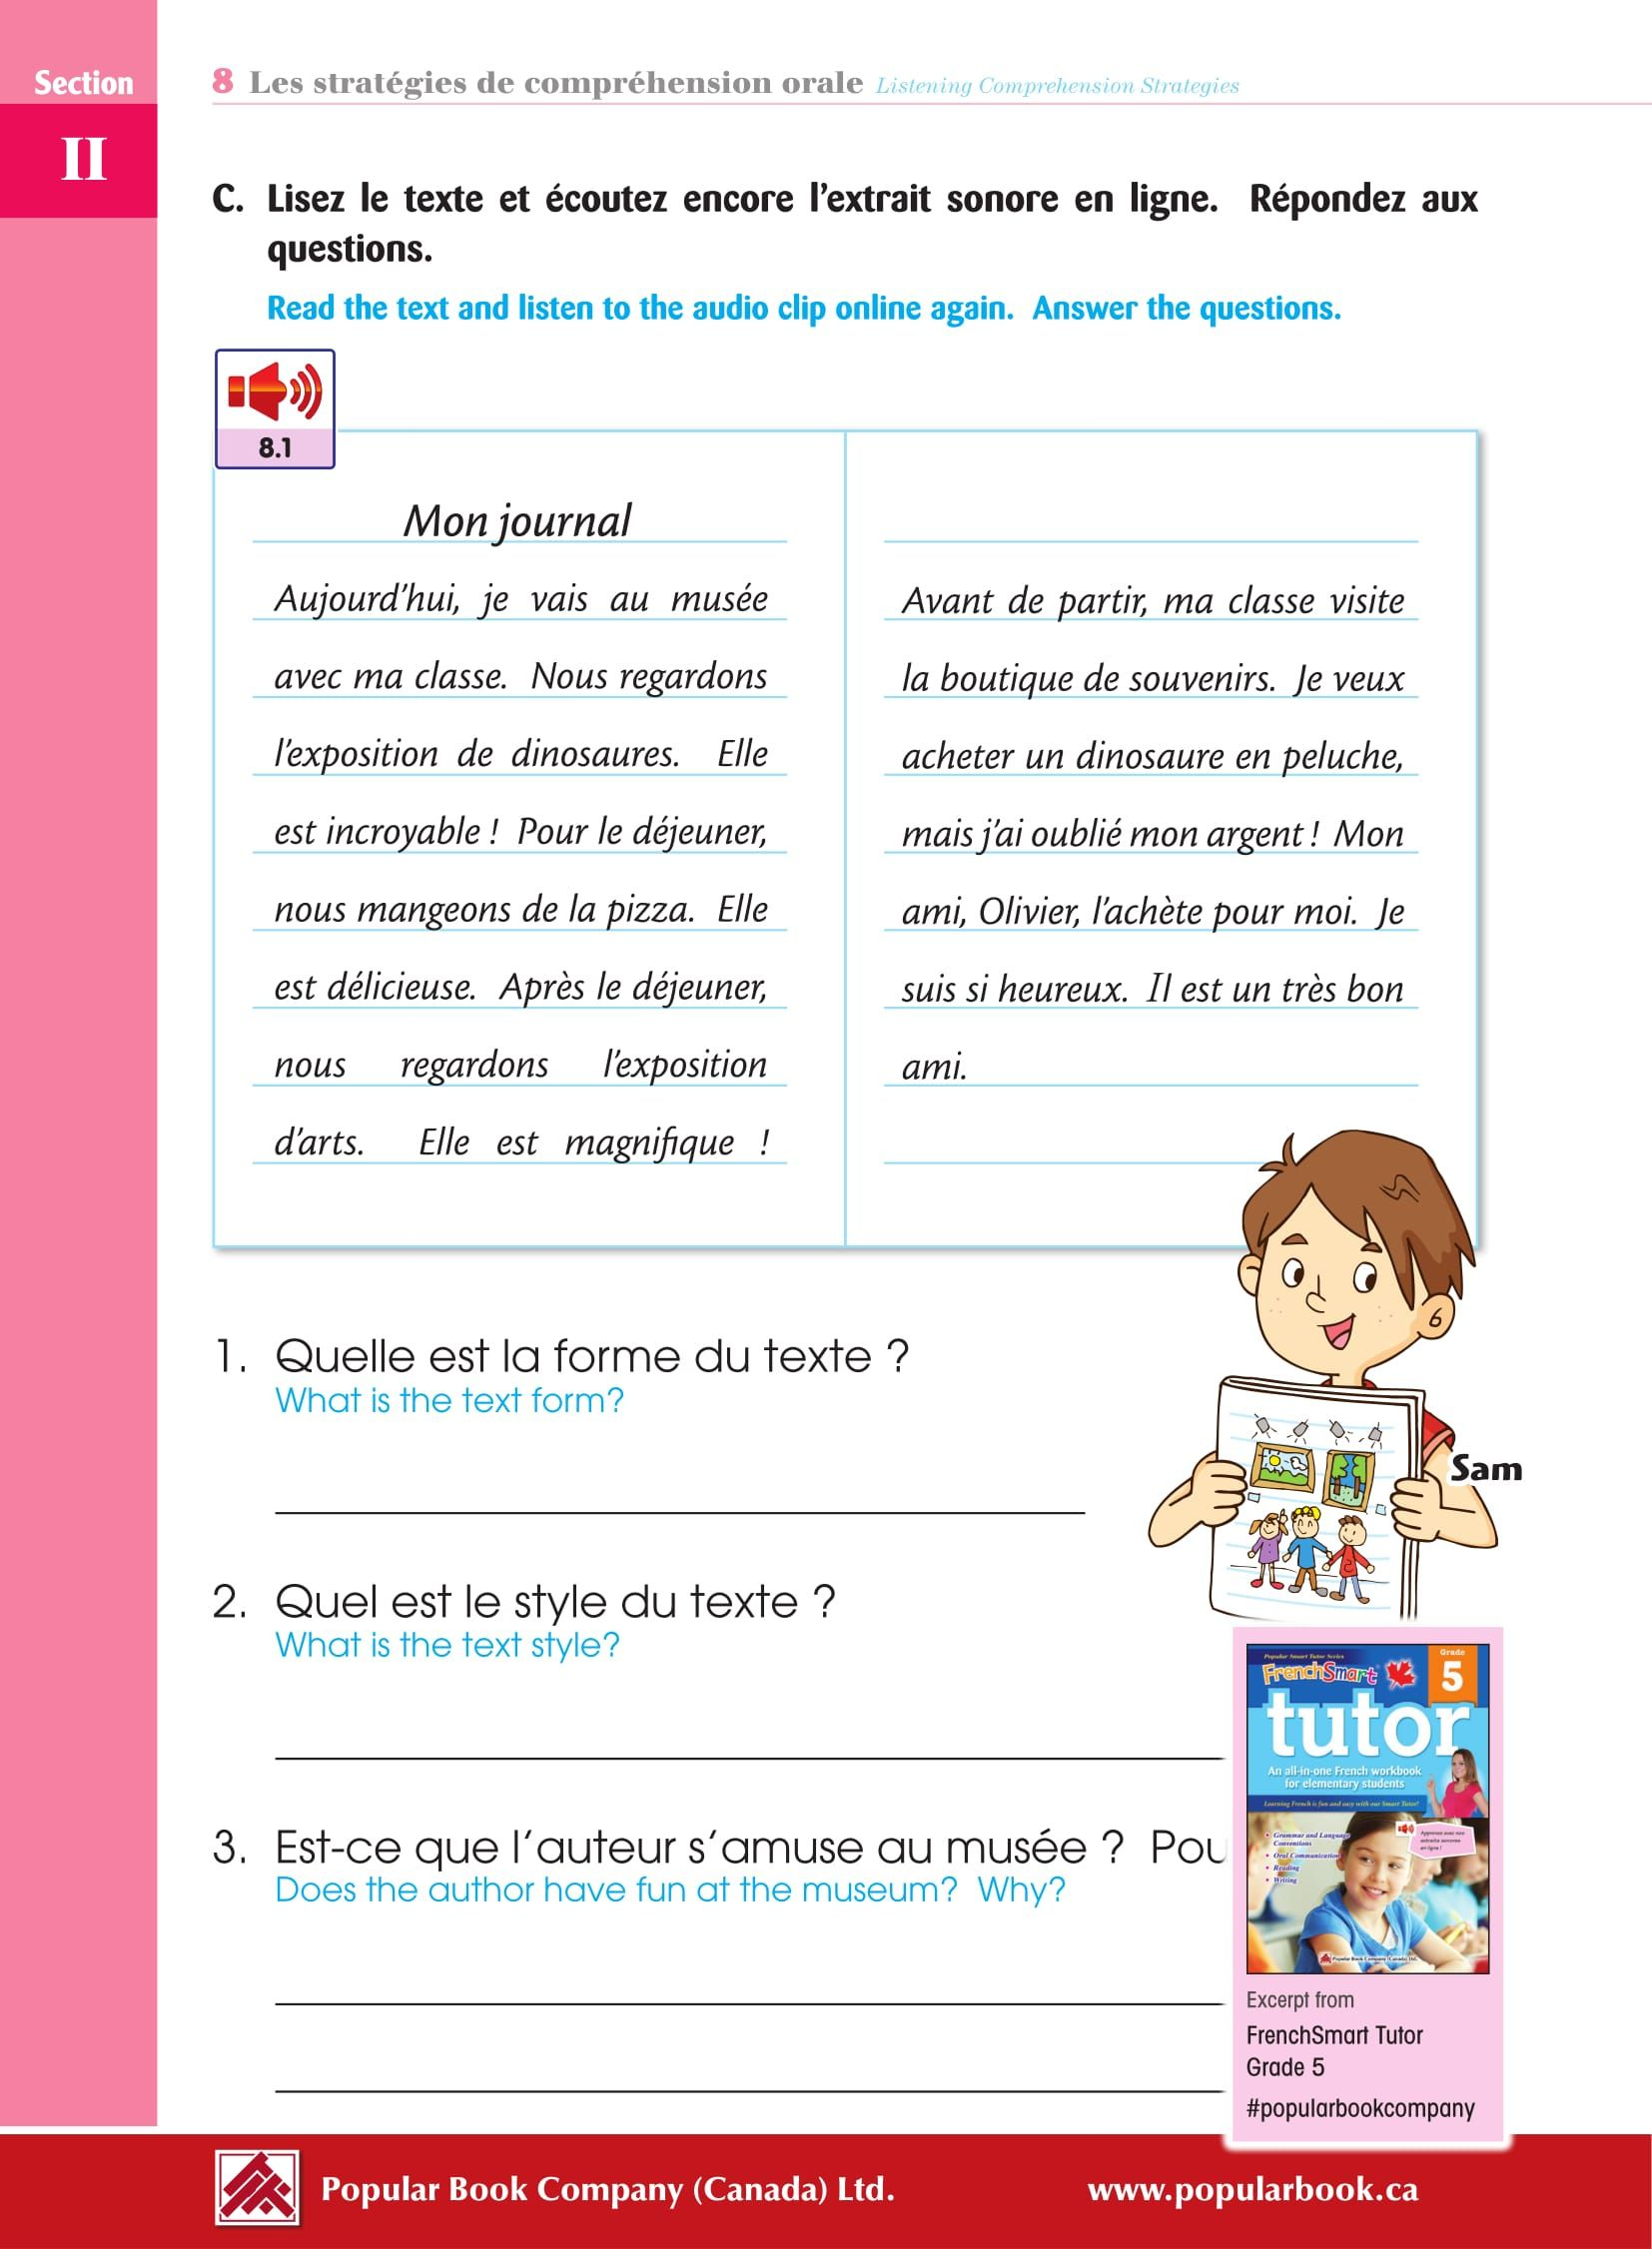 small resolution of Download the free sample pages from FrenchSmart Tutor Grade 5 workbook.  #PopularBookCompany #FrenchSmartT…   Free worksheets for kids